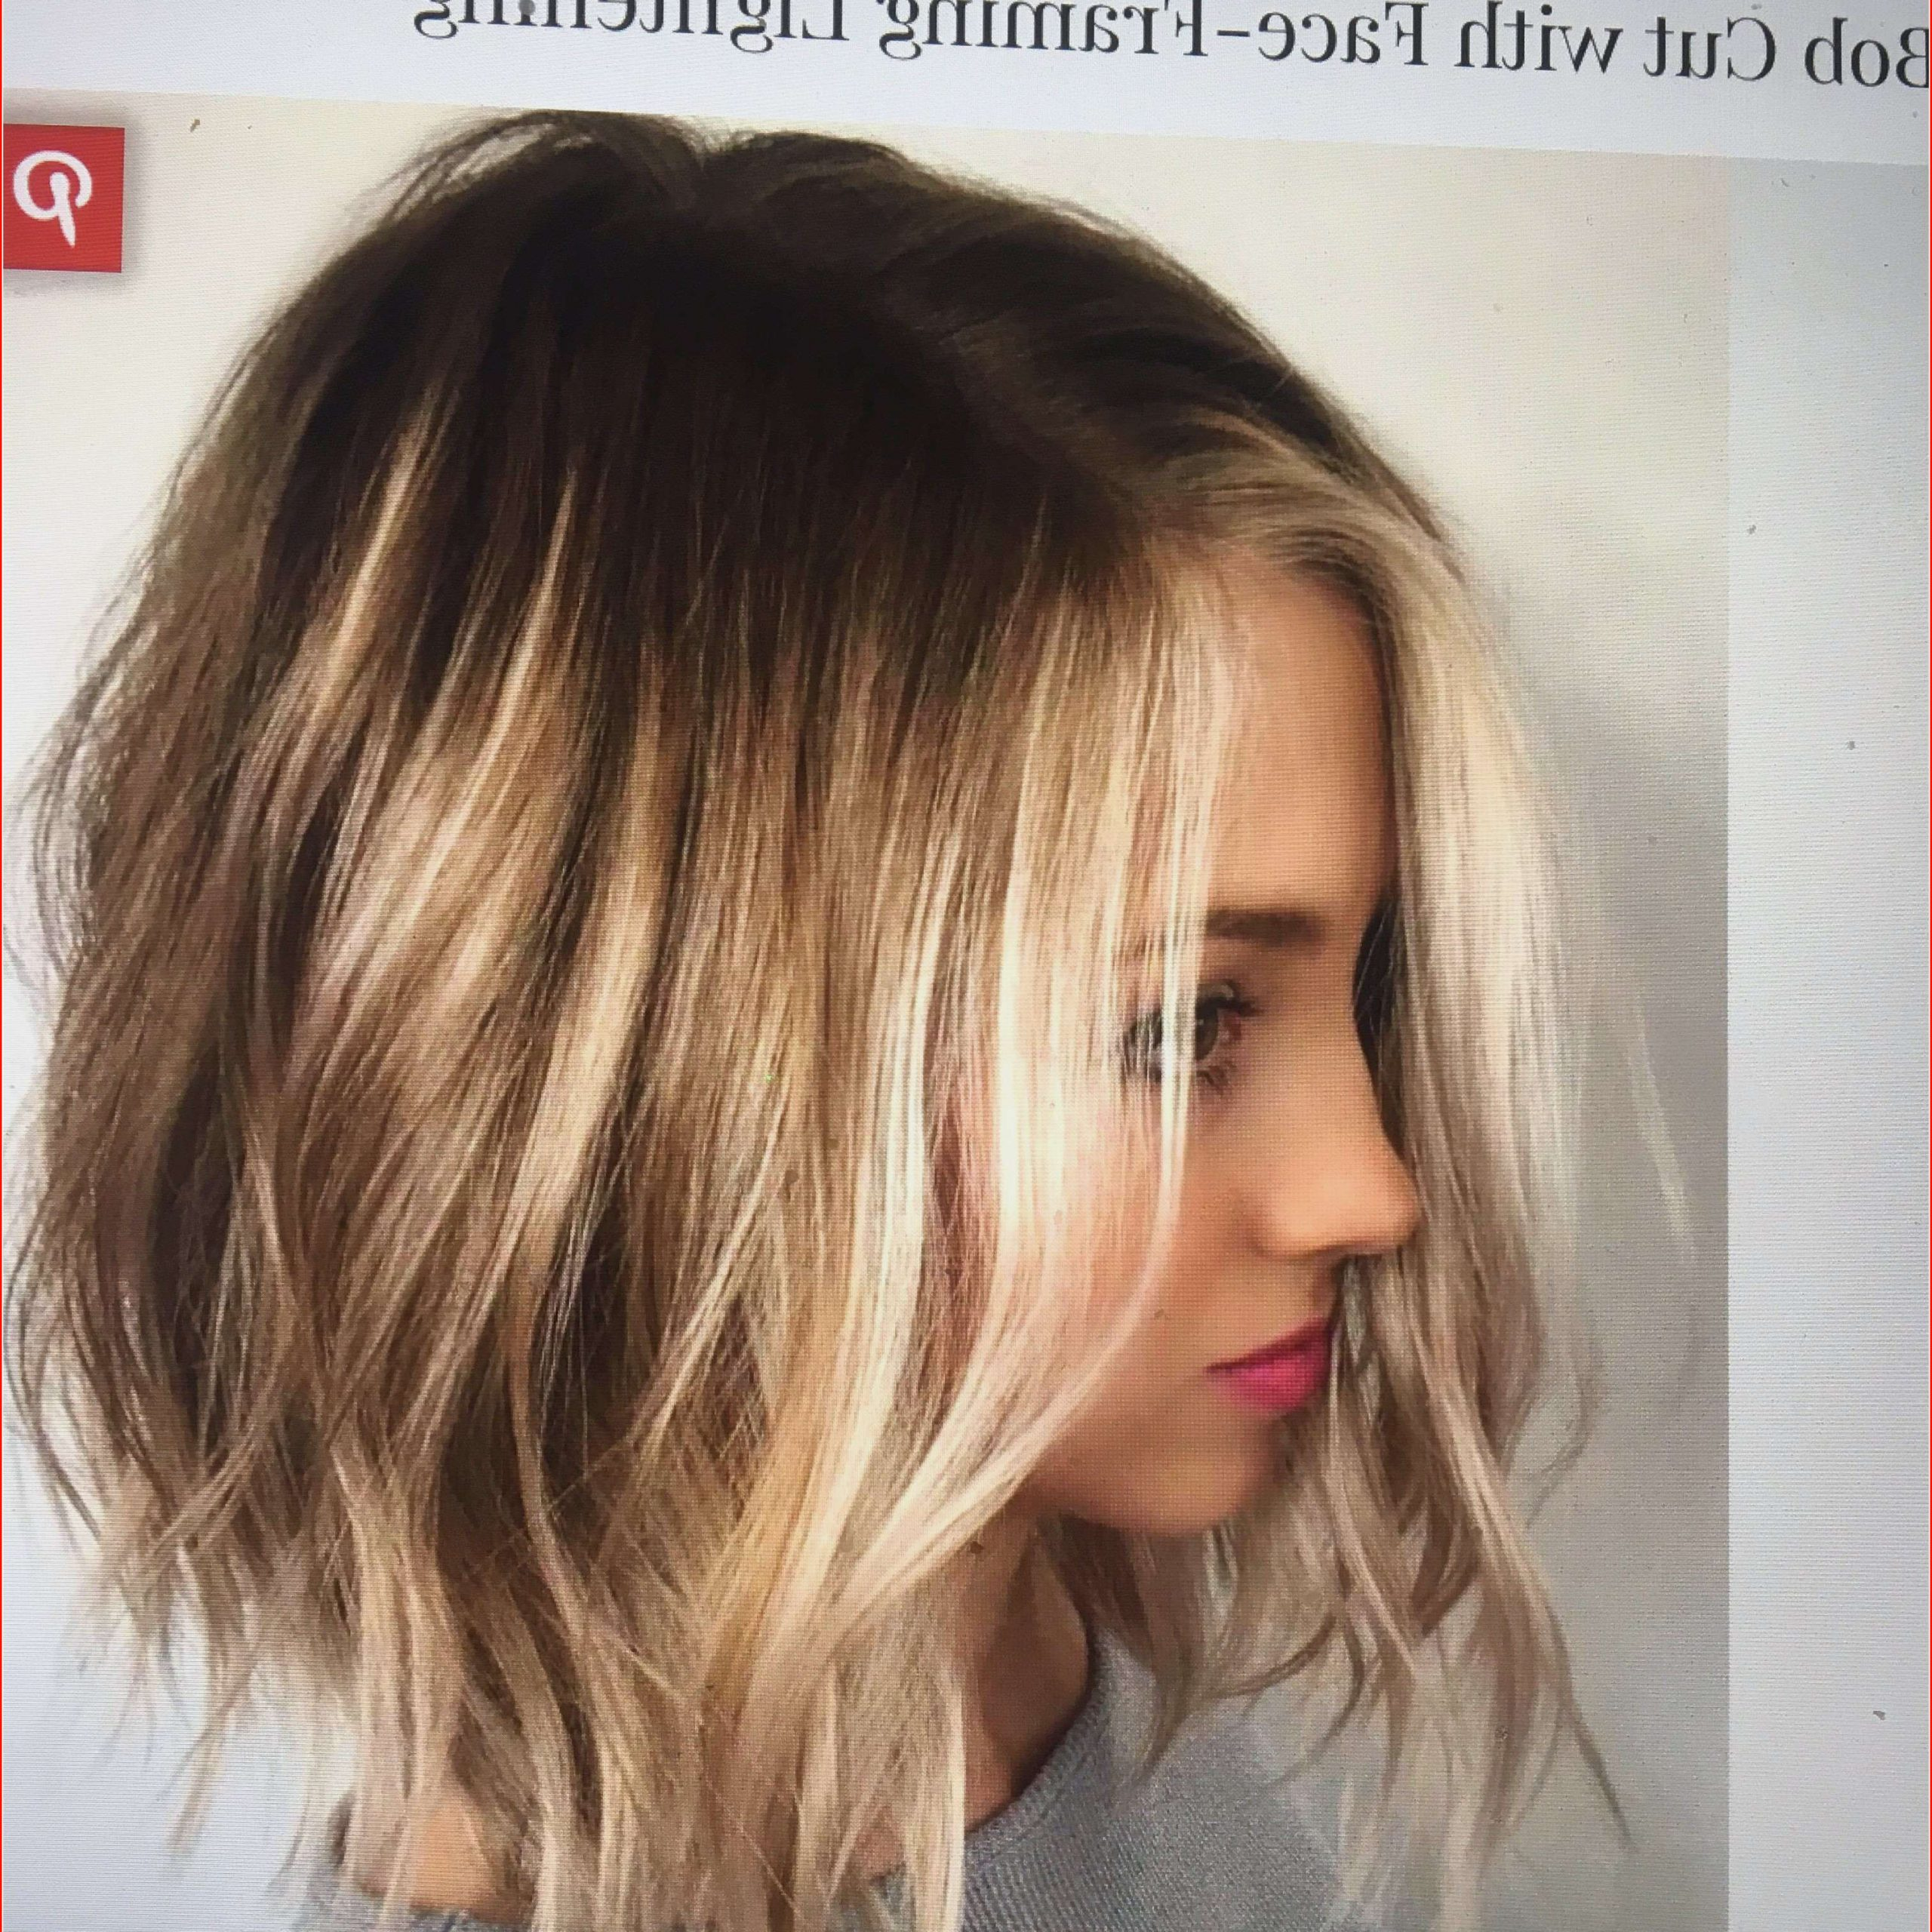 Inspiring Short To Medium Hairstyles For Fine Hair Gallery For Most Recent Short And Medium Layers Haircuts For Fine Hair (Gallery 6 of 20)